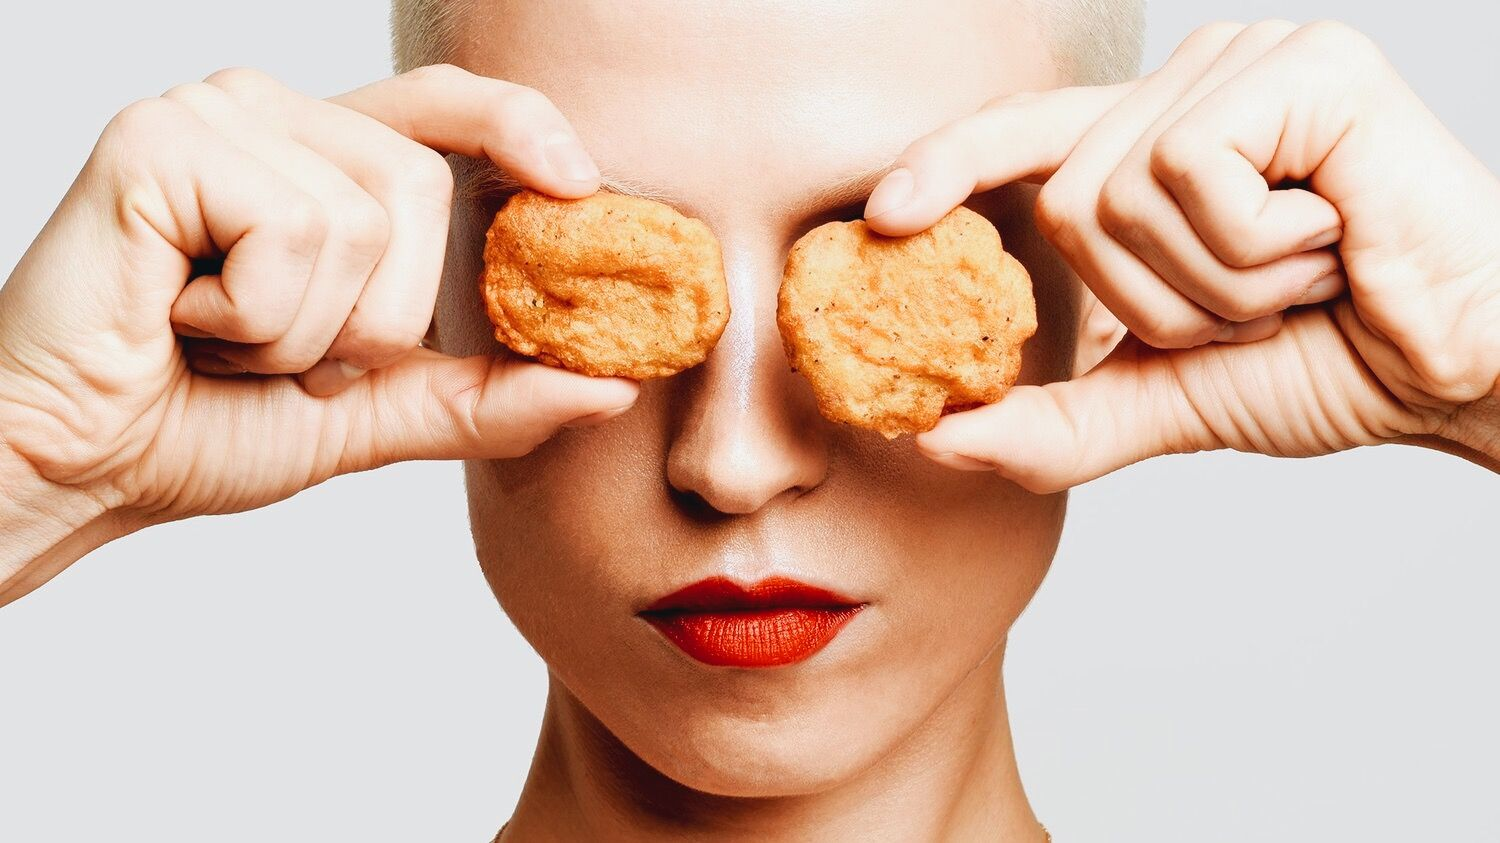 The Top 6 Vegan Food and Innovation Trends to Follow in 2021